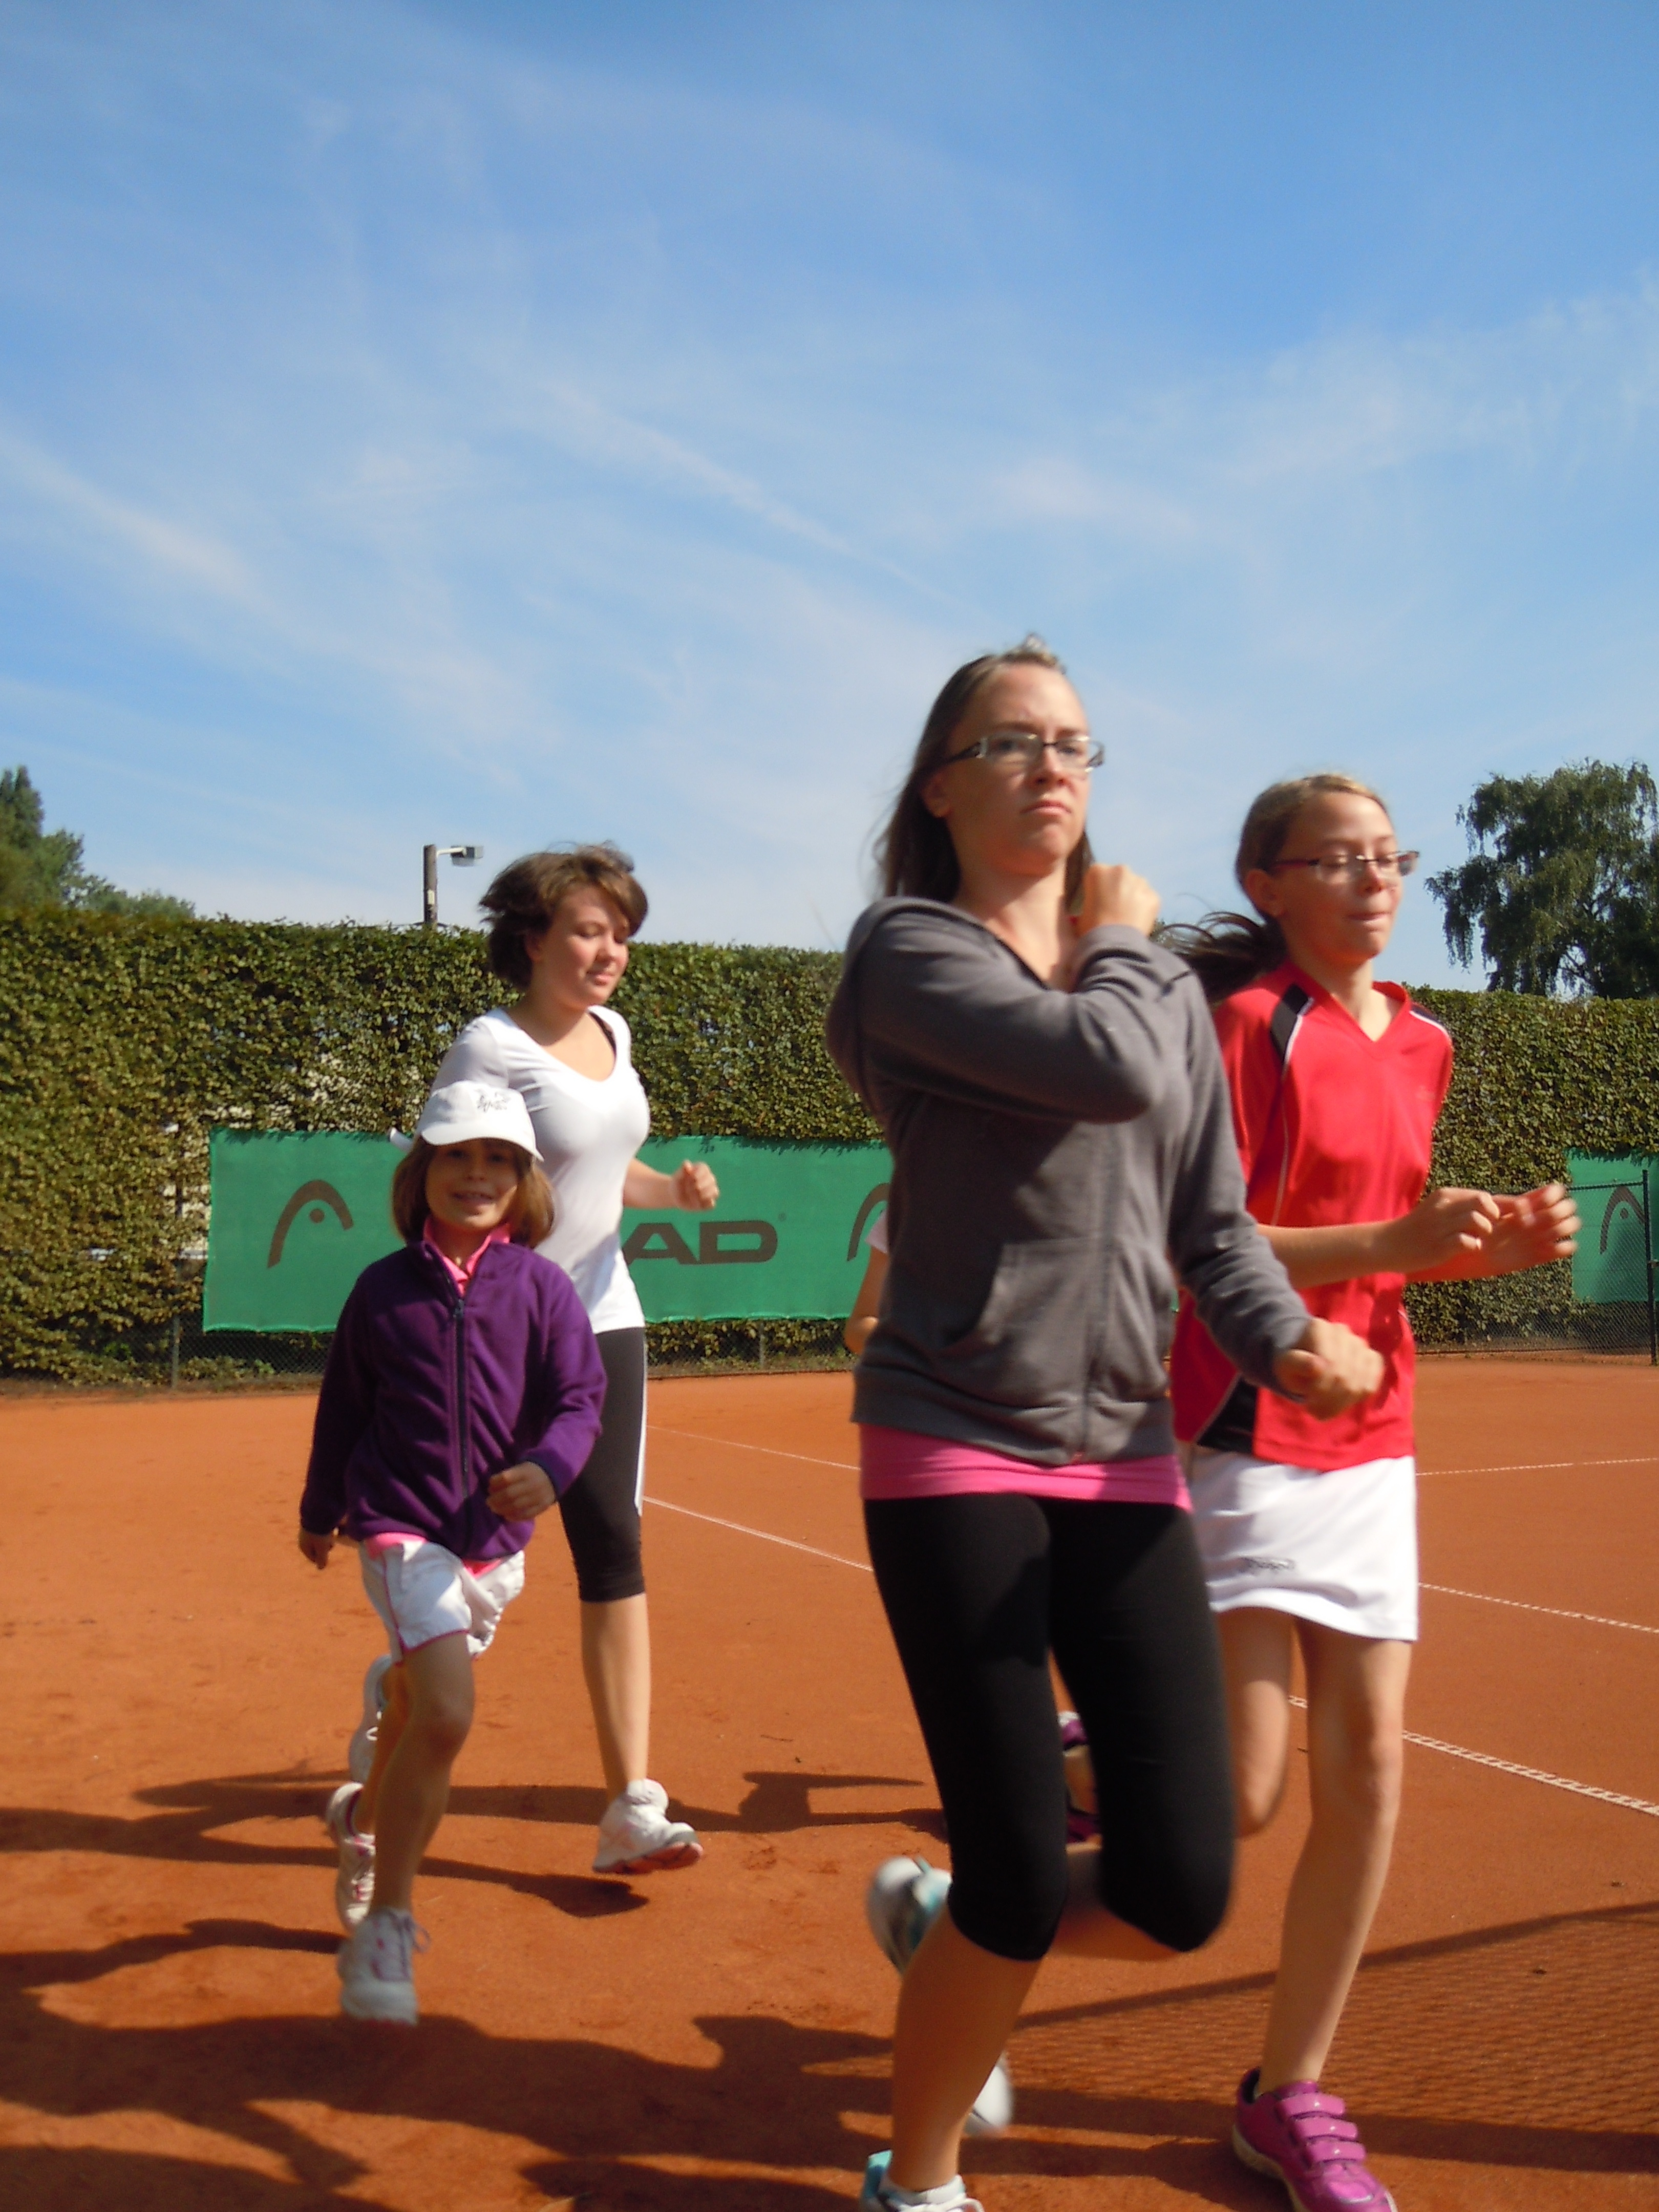 Tenniscamp TC Blau-Gold Bonn e.V.